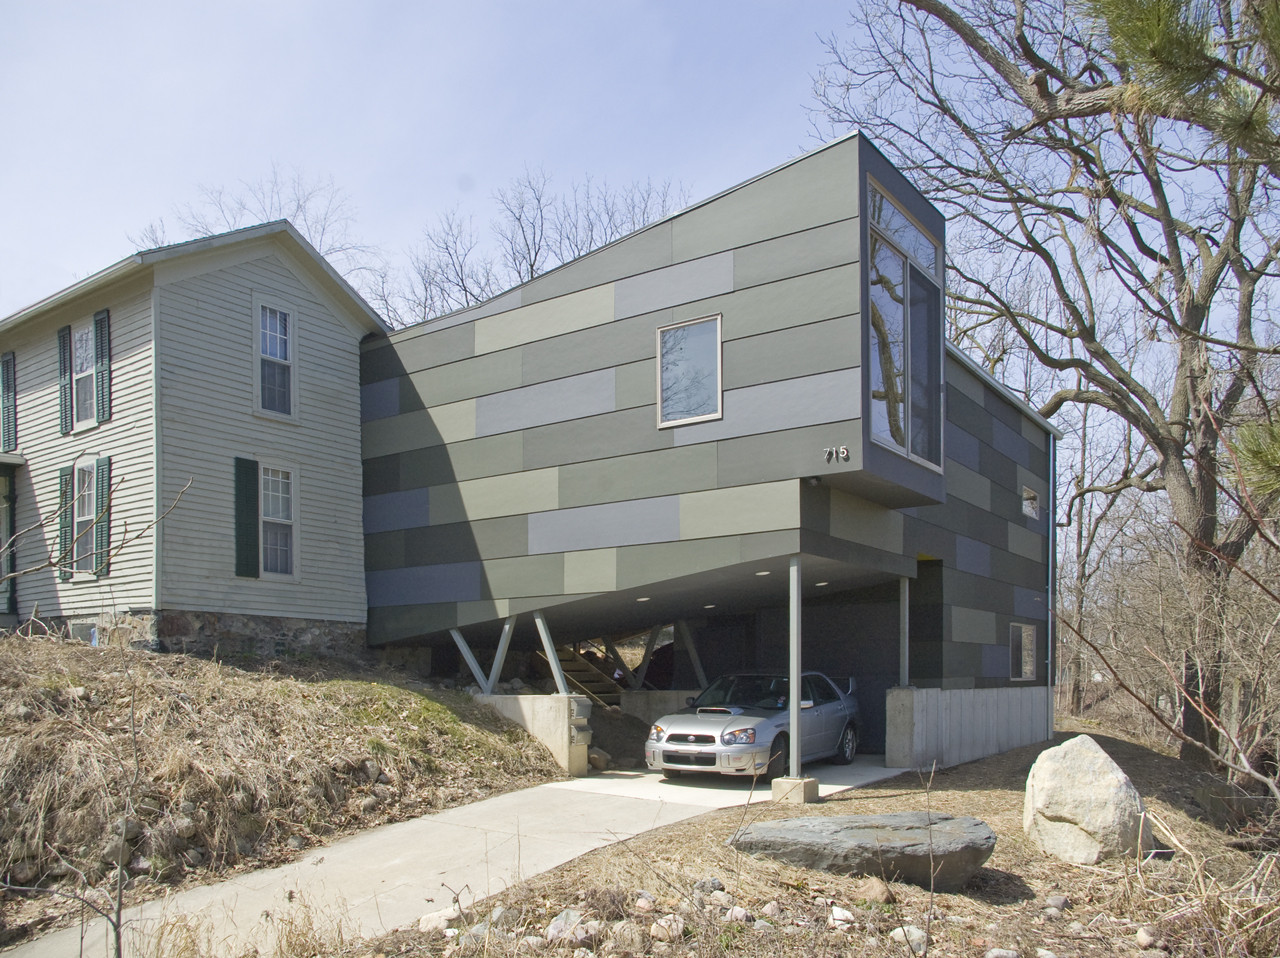 Park House / PLY Architecture, Courtesy of PLY Architecture